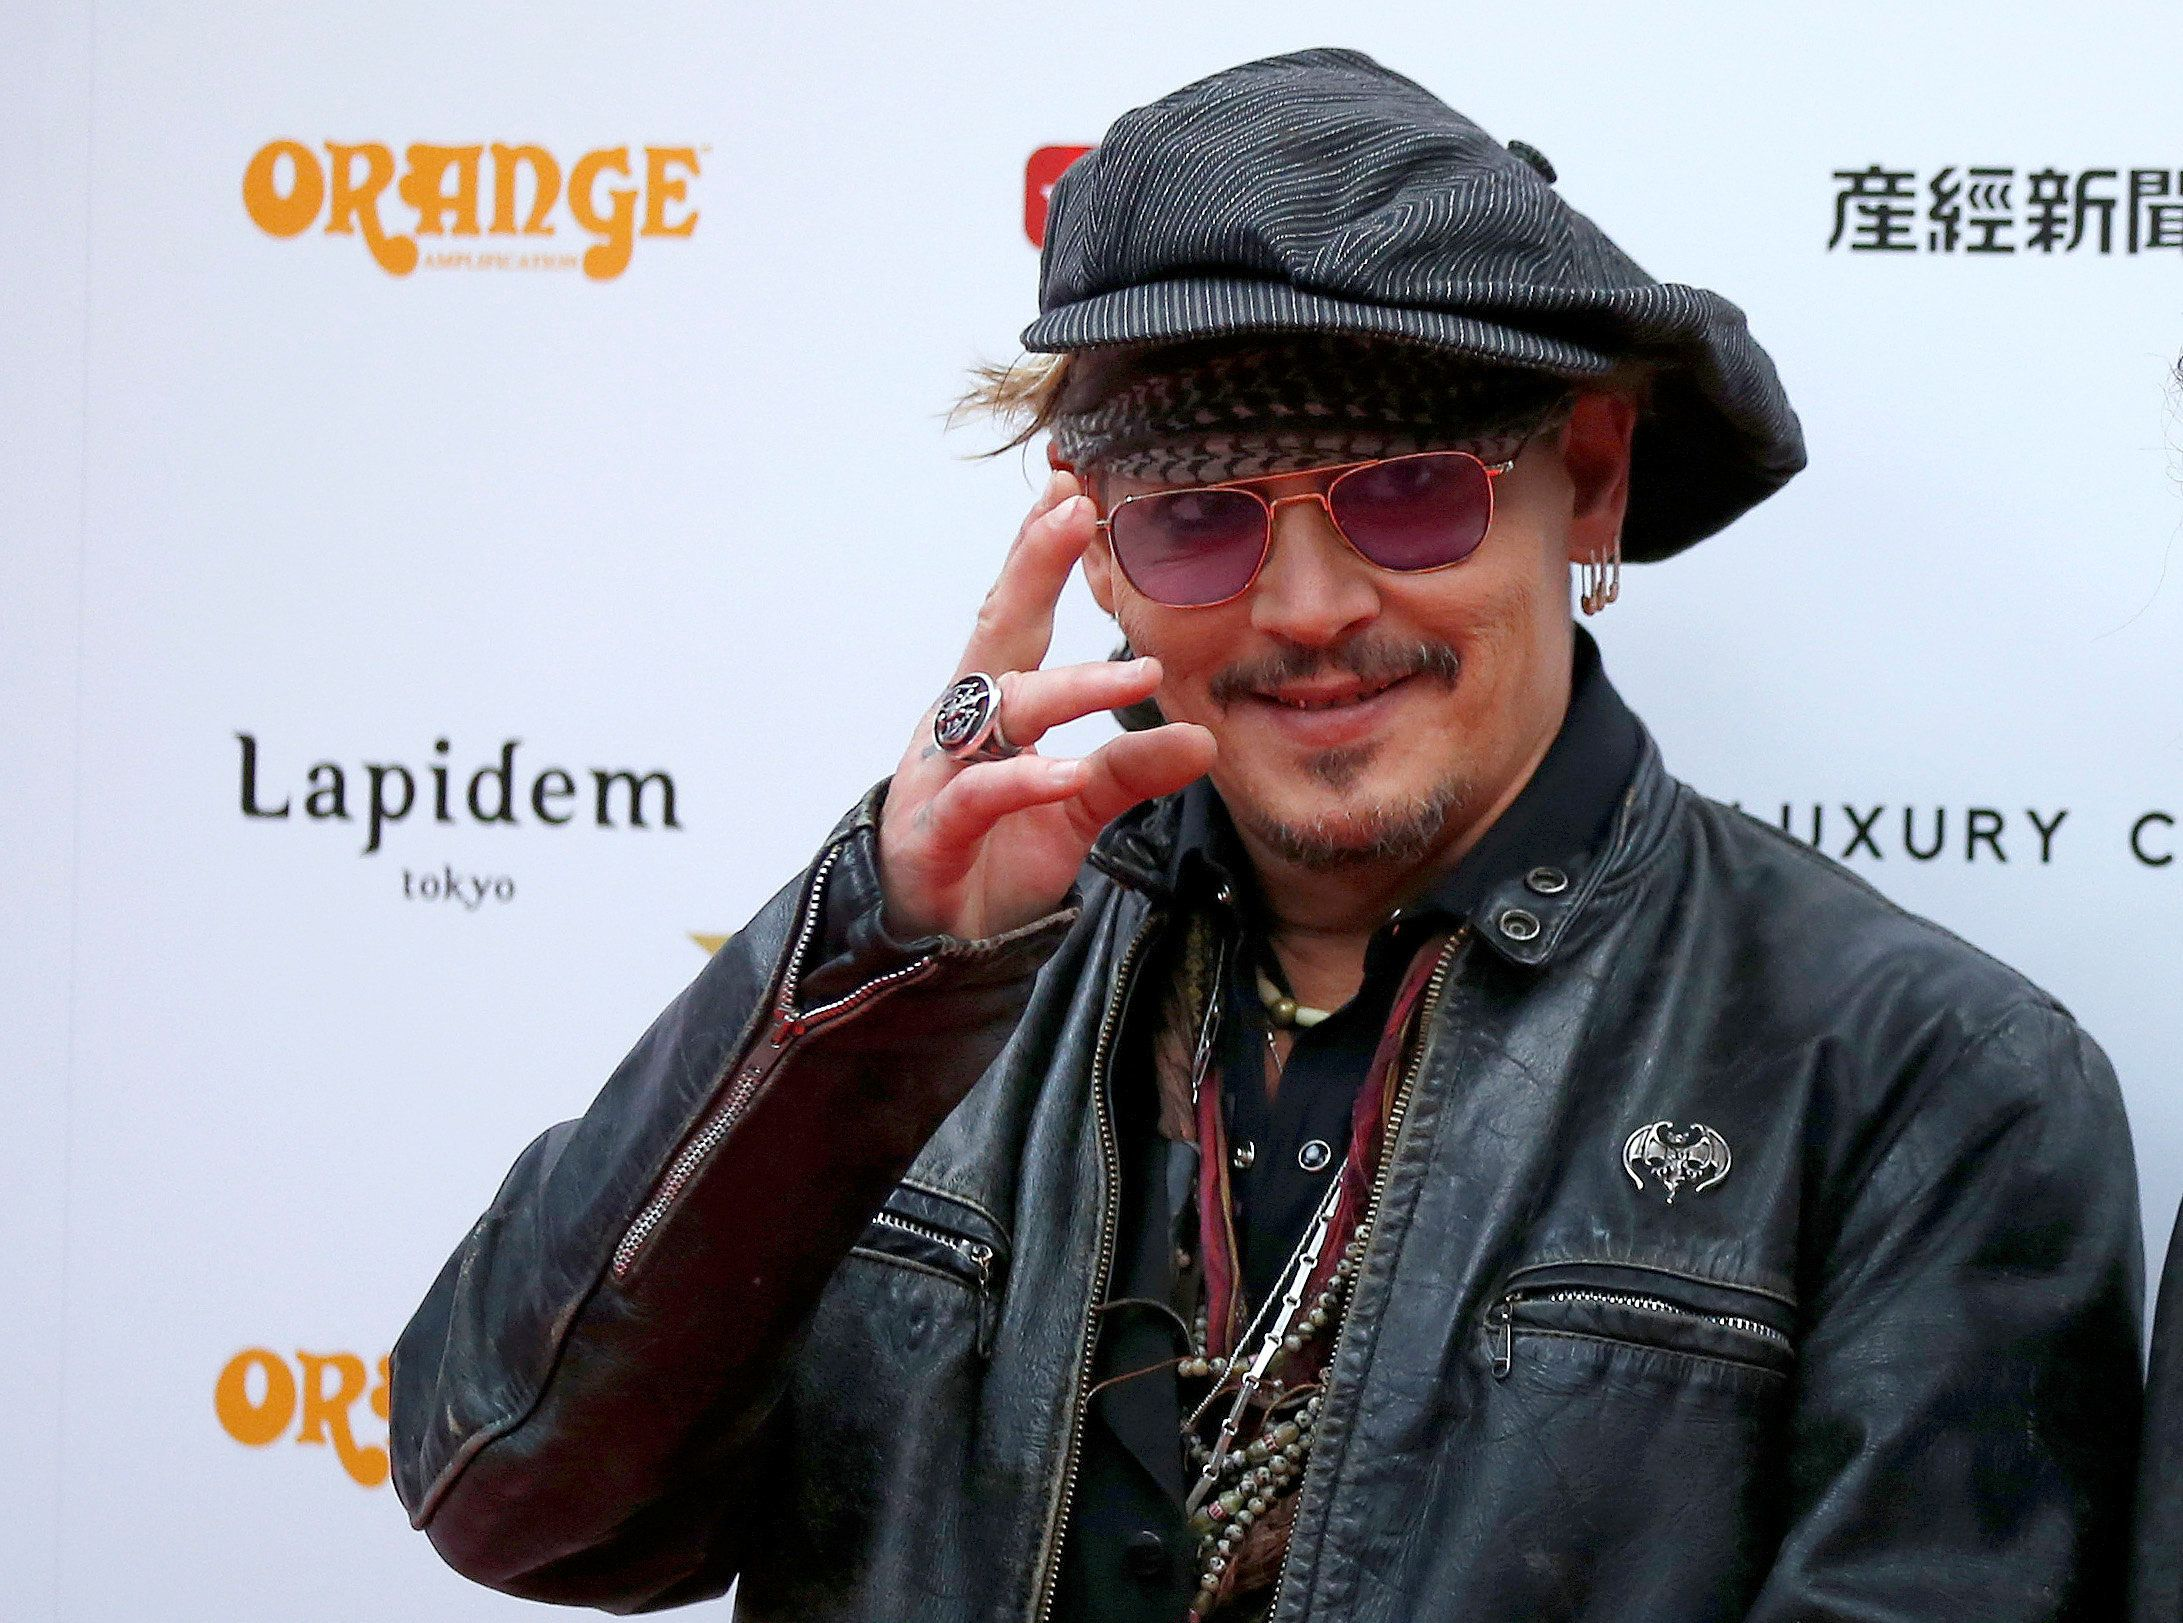 Johnny Depp poses on the red carpet at the 2016 Classic Rock Roll of Honour awards in Tokyo, Japan, November 11, 2016.   REUTERS/Toru Hanai